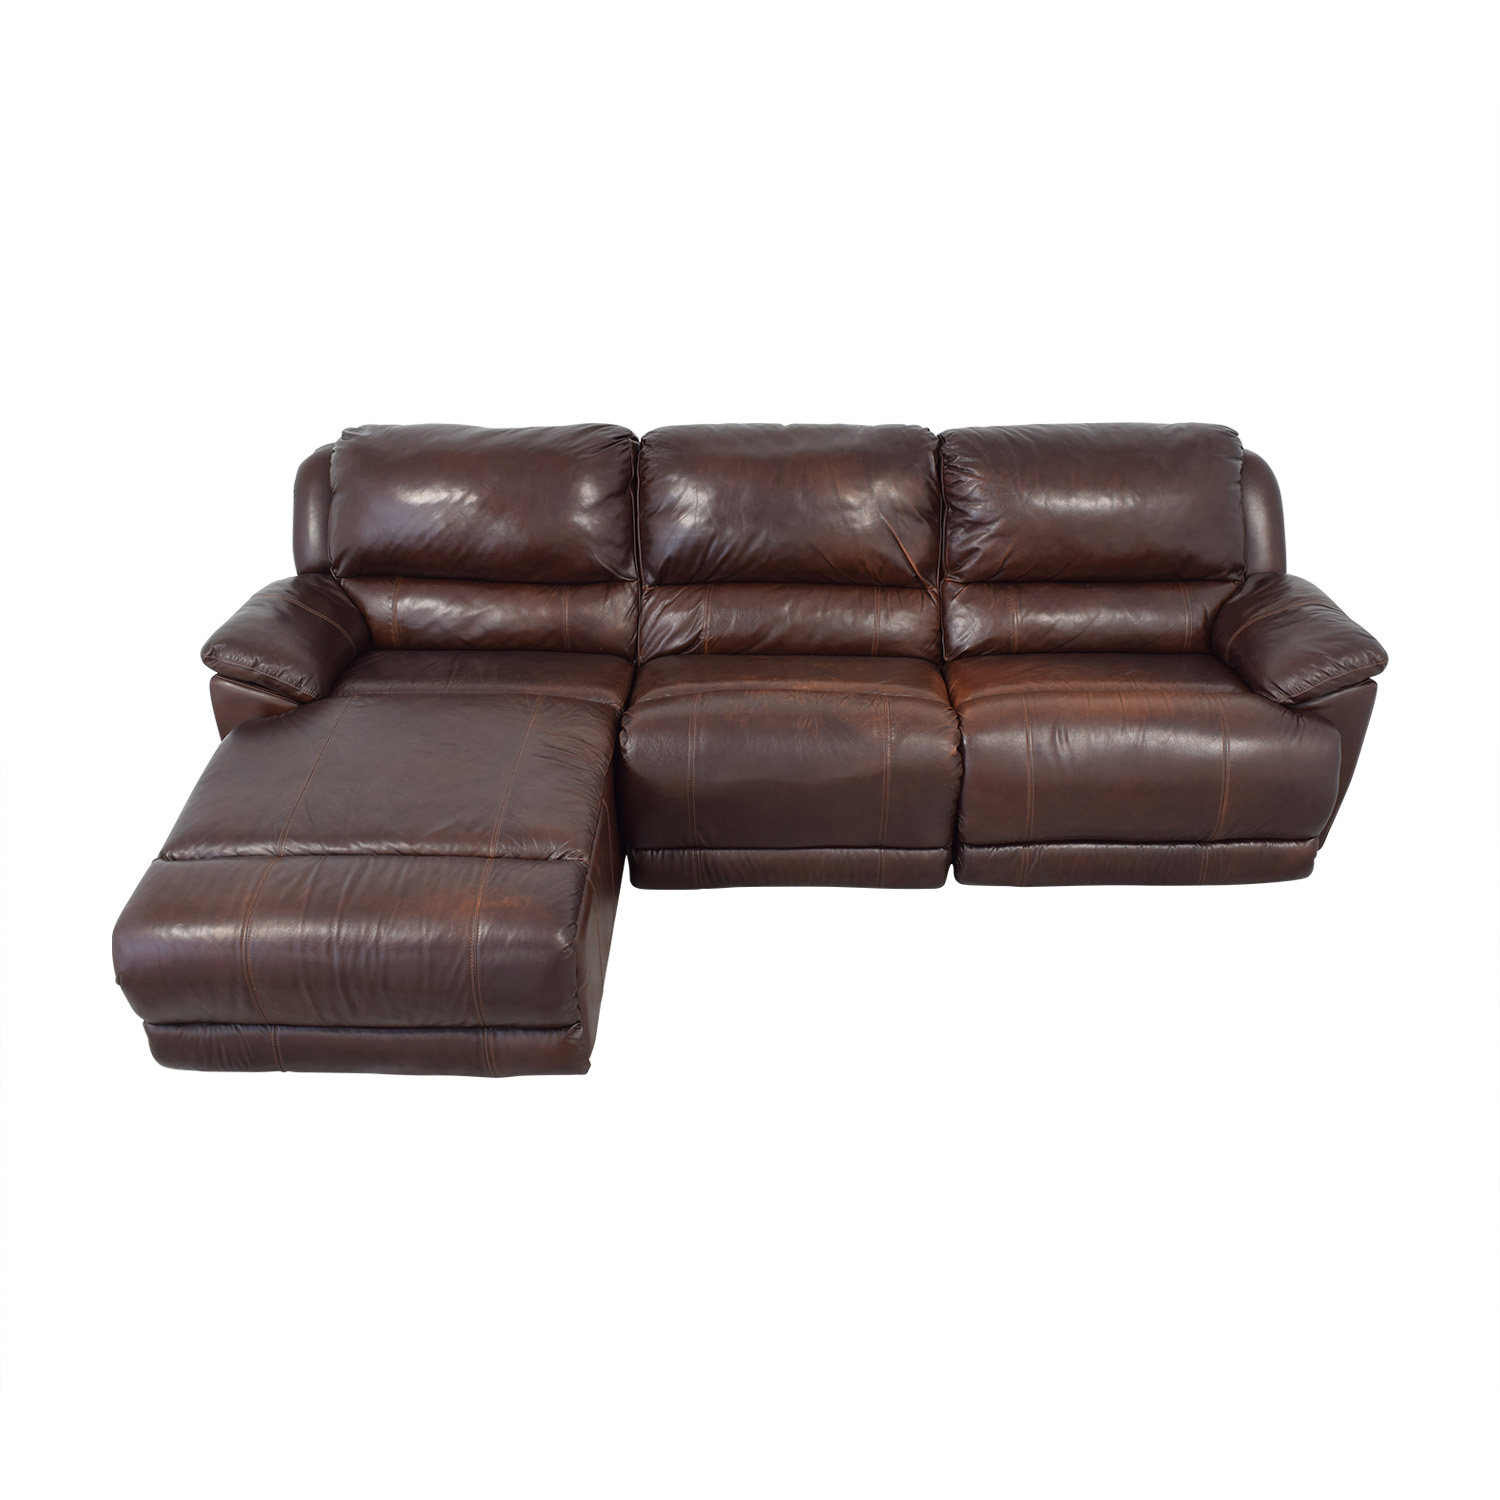 Macy's Leather Sectional / Sectionals